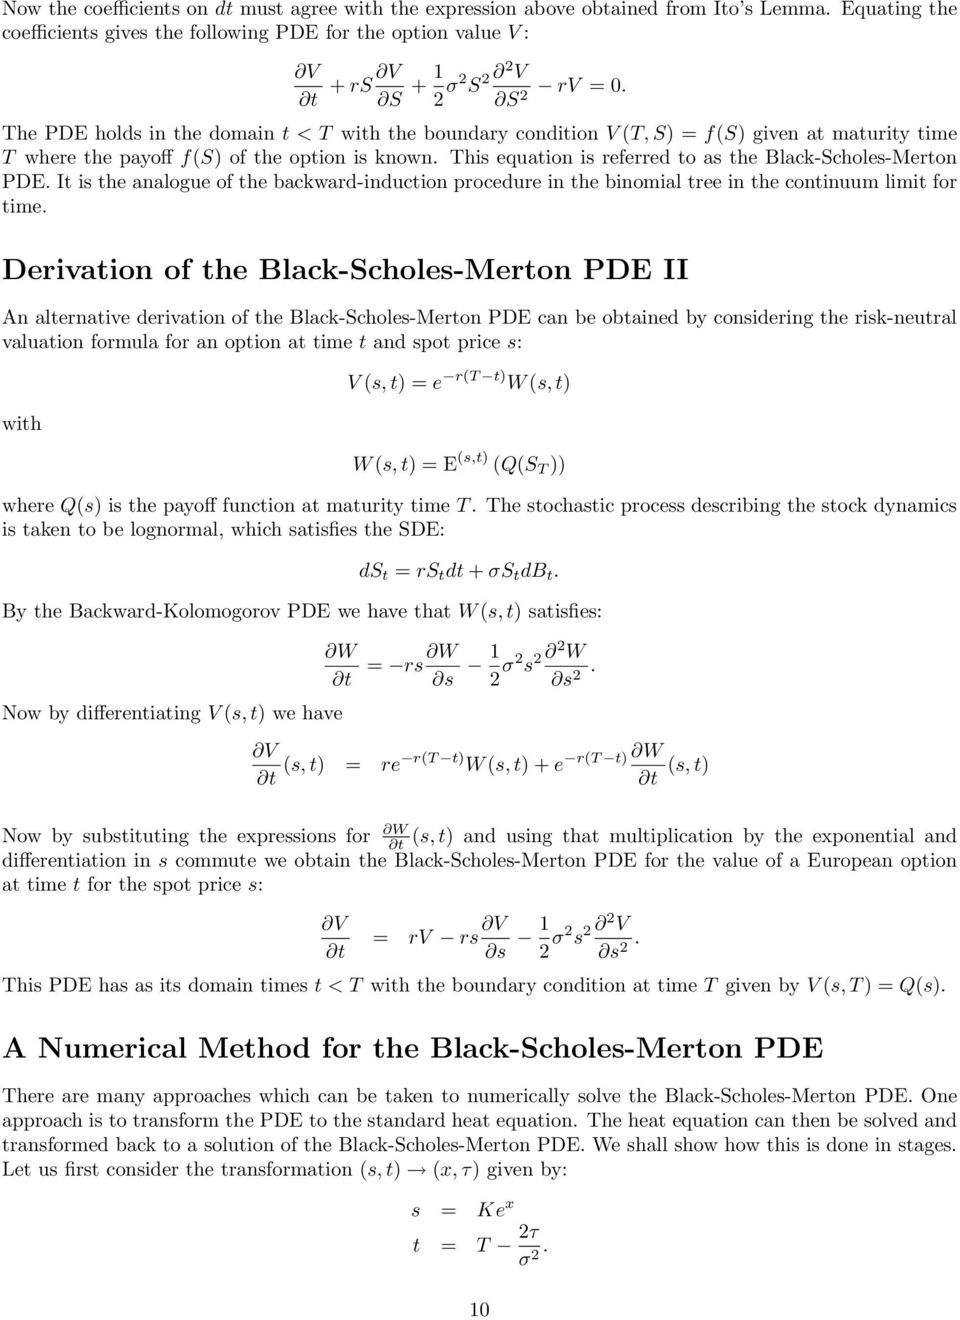 PDE It is the analogue of the backward-induction procedure in the binomial tree in the continuum limit for time Derivation of the Black-Scholes-Merton PDE II An alternative derivation of the